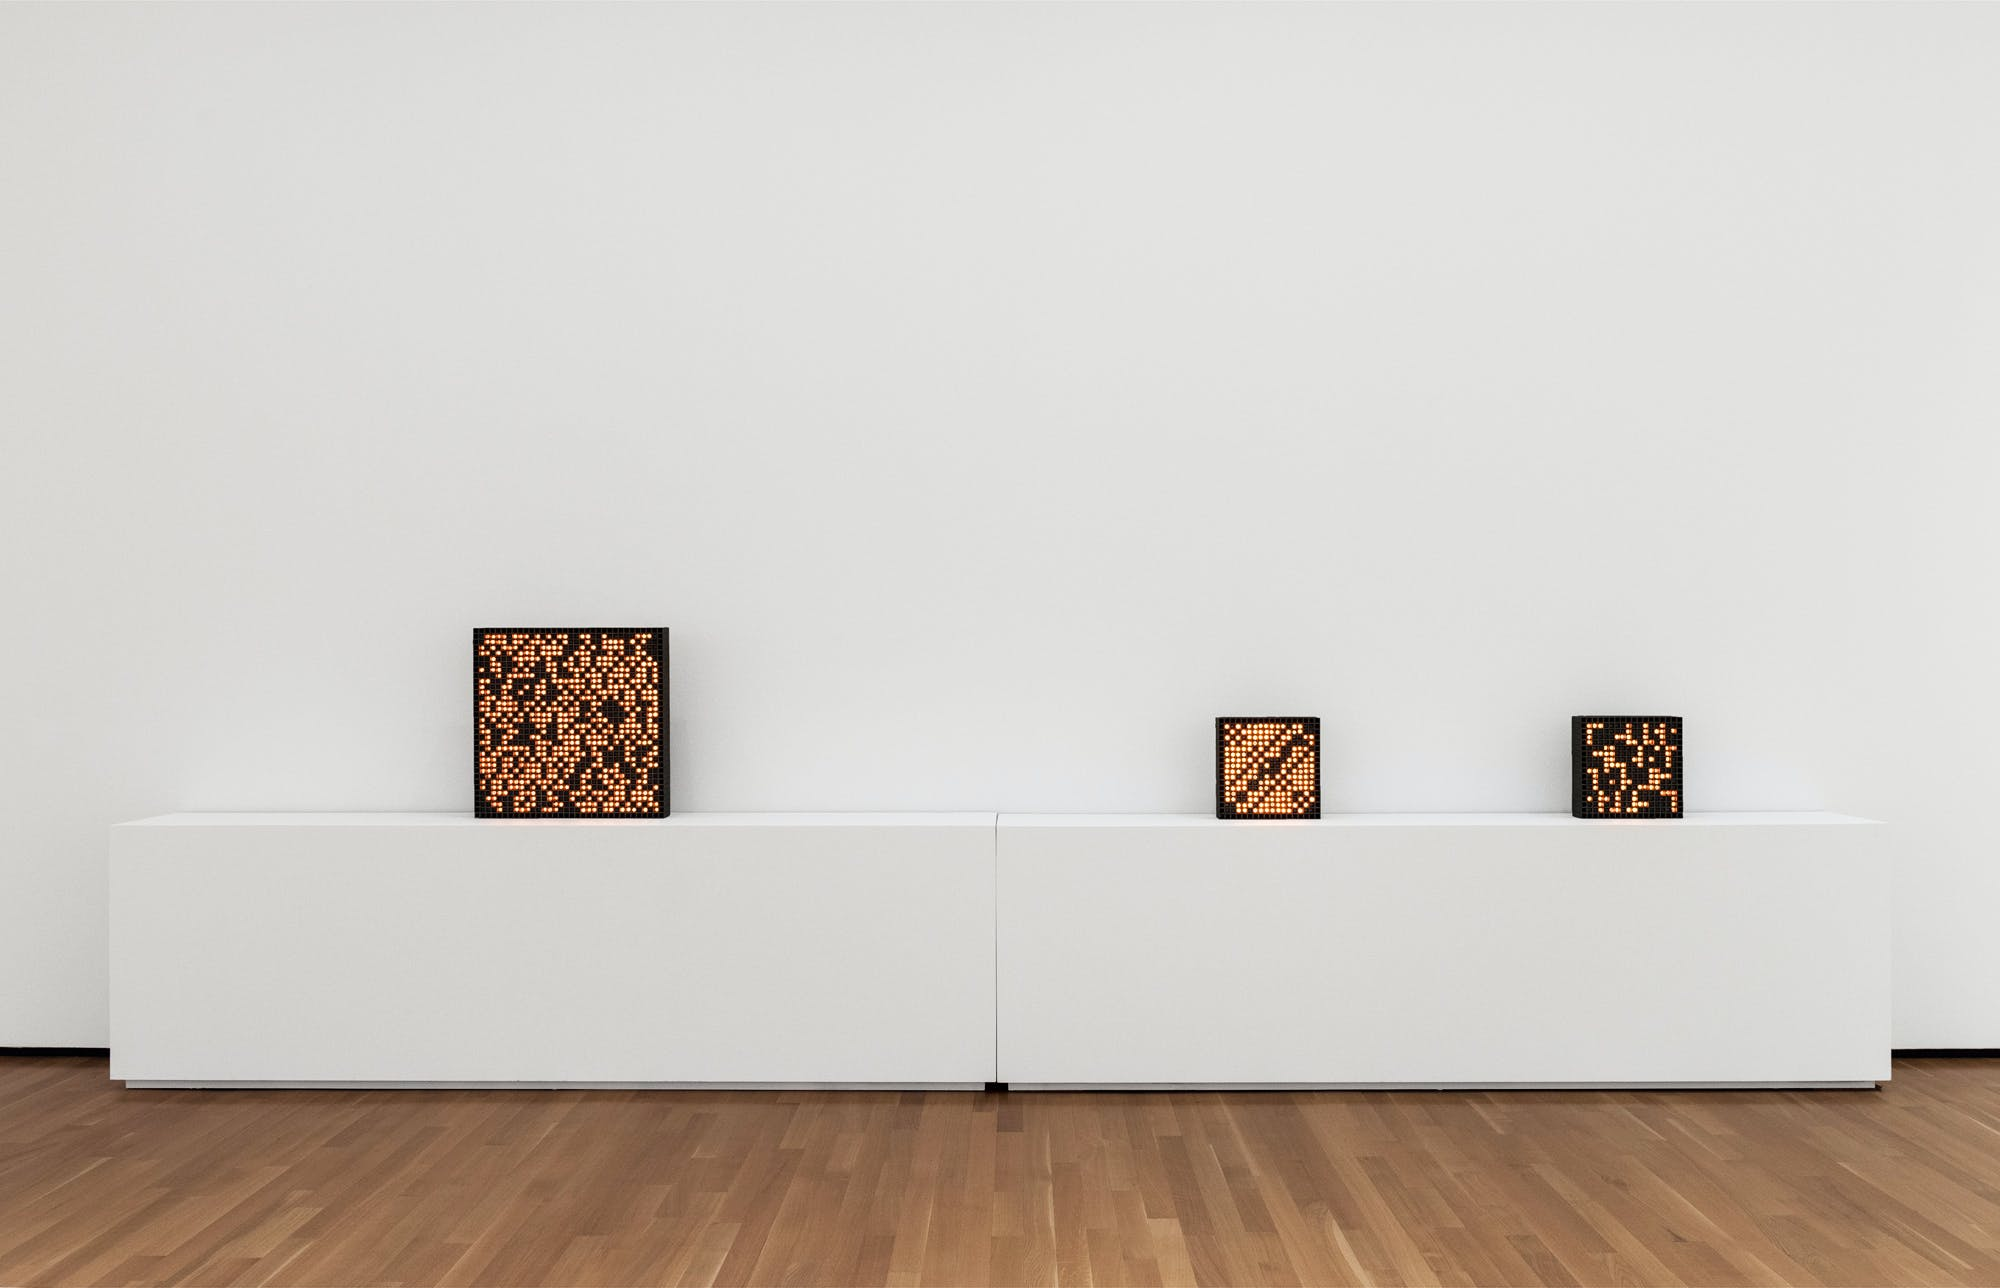 <p><em>Kinetic computer-based artworks by Vladimir Bonačić, 1969-1970. FRONT International installation view at Akron Art Museum. Photo by Field Studio. FRONT Exhibition Company is a 2019 KAC Akron finalist.</em></p>